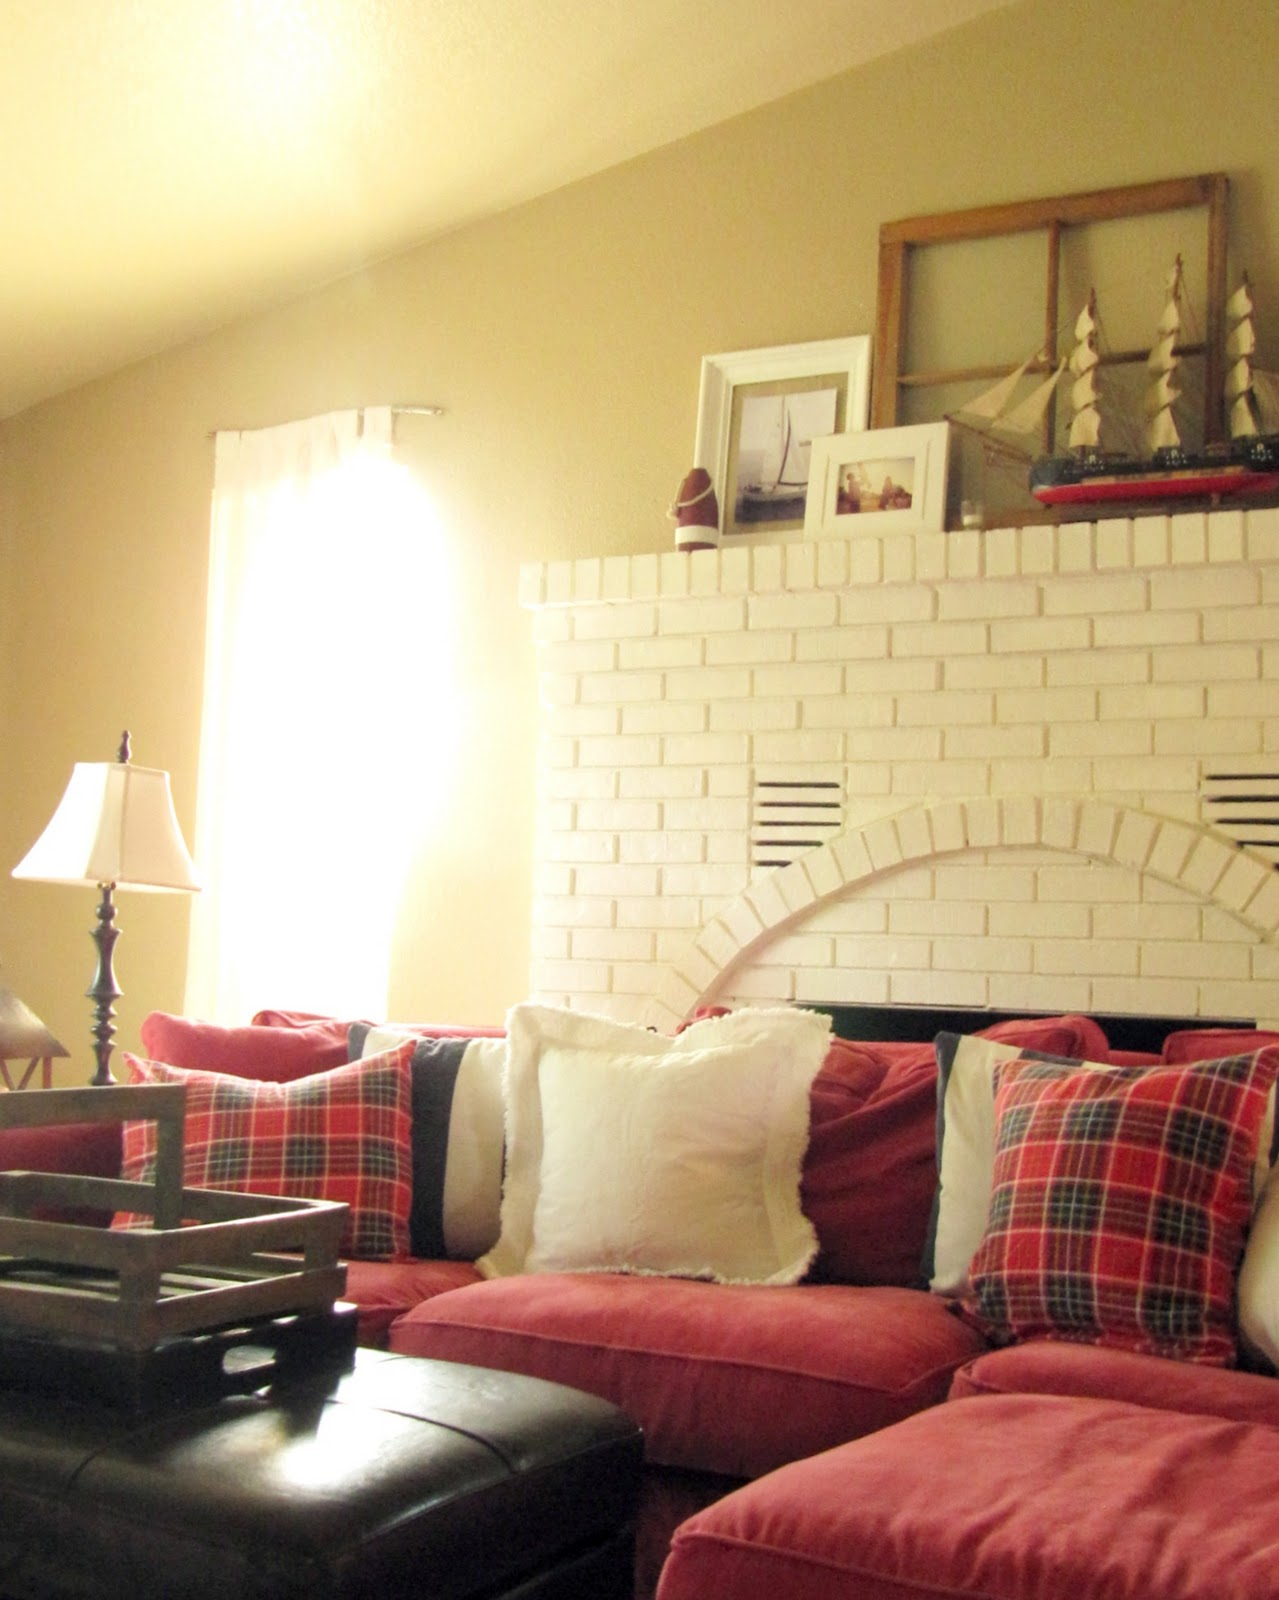 My Living Room Dressed in Plaid - The Wicker House